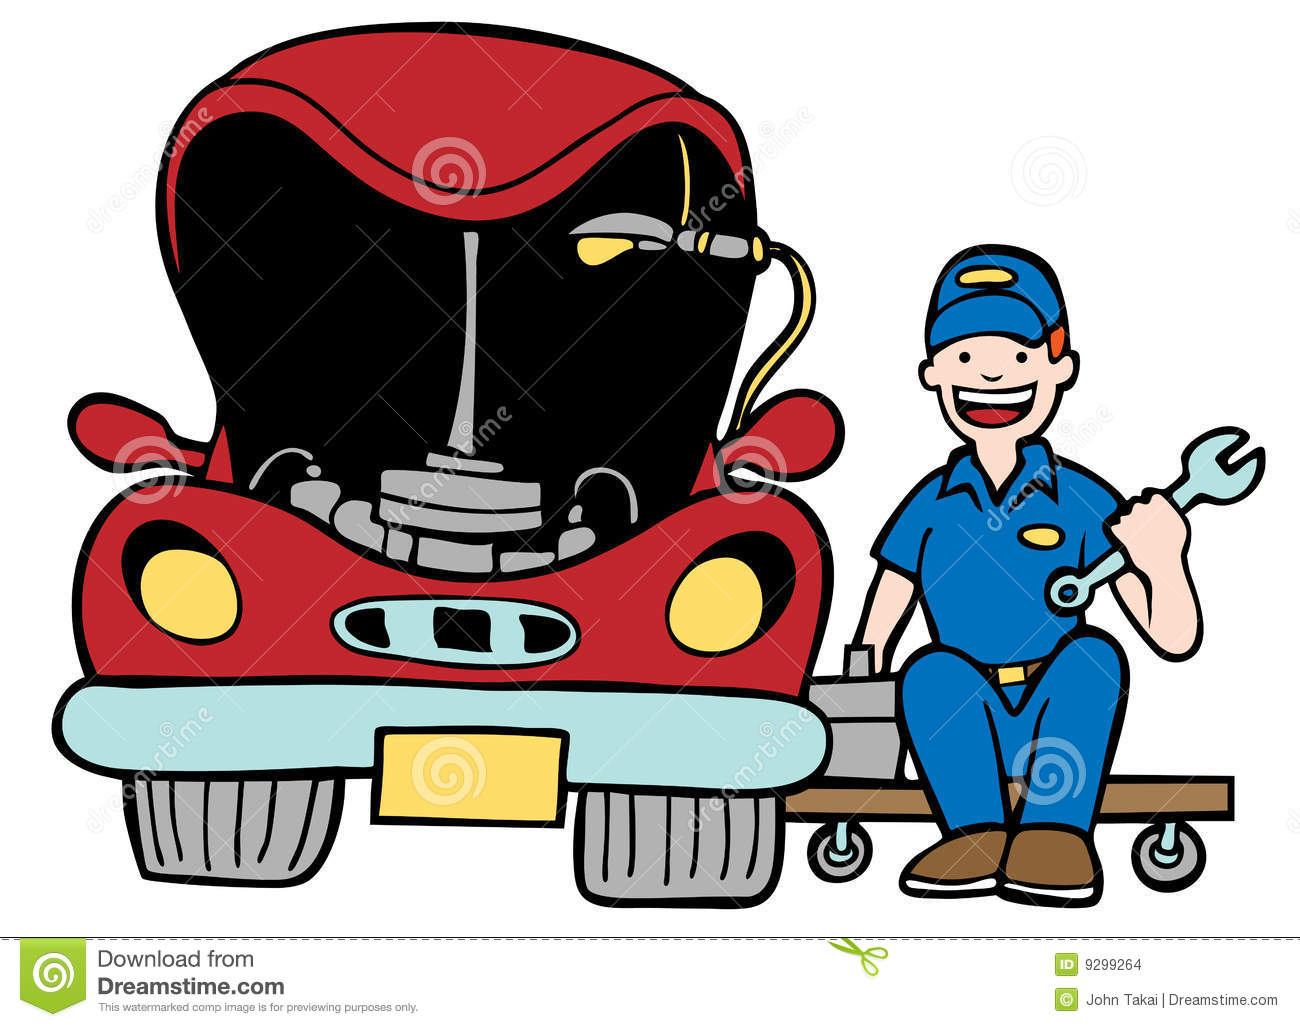 Auto Repair Clipart Jpg Car Pictures-Auto Repair Clipart Jpg Car Pictures-9